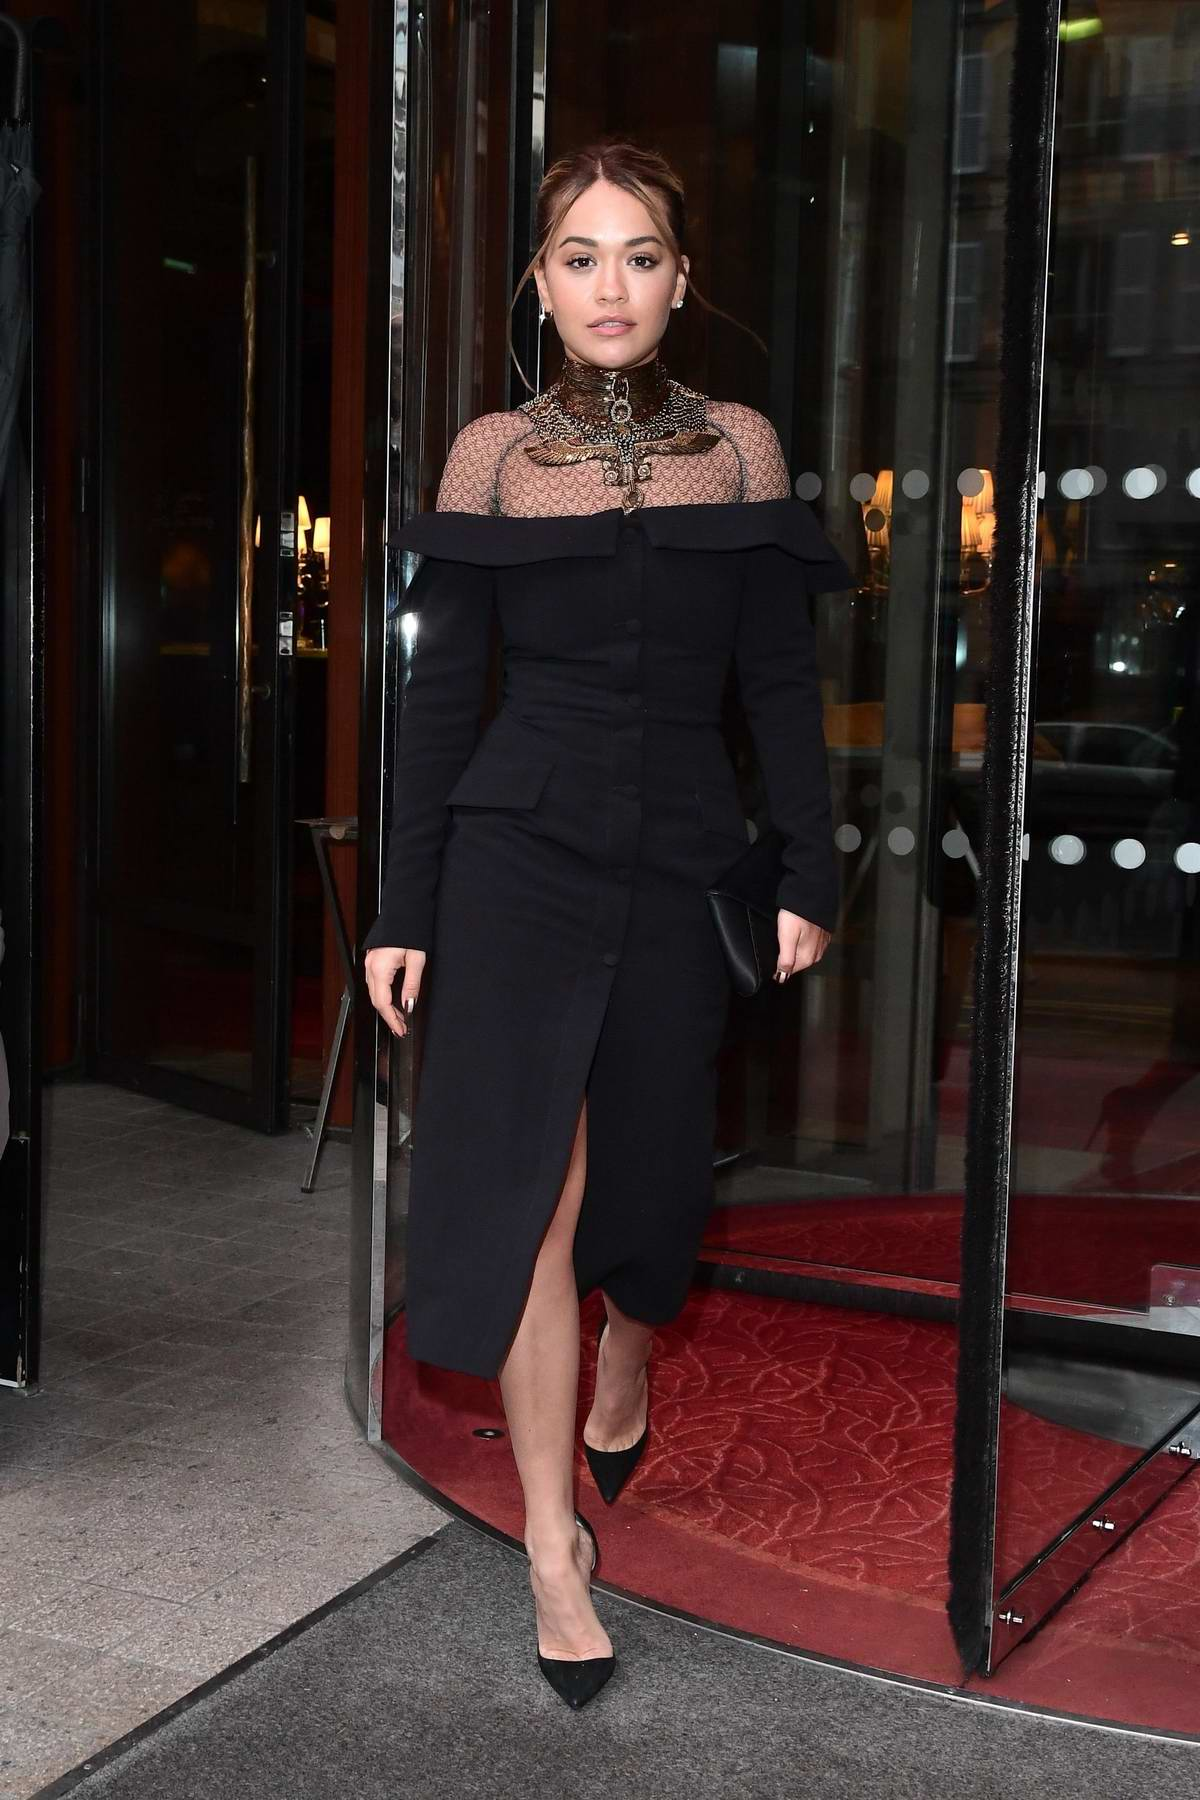 Rita Ora looks great in a black dress as she leaves Le Royal Monceau hotel in Paris, France